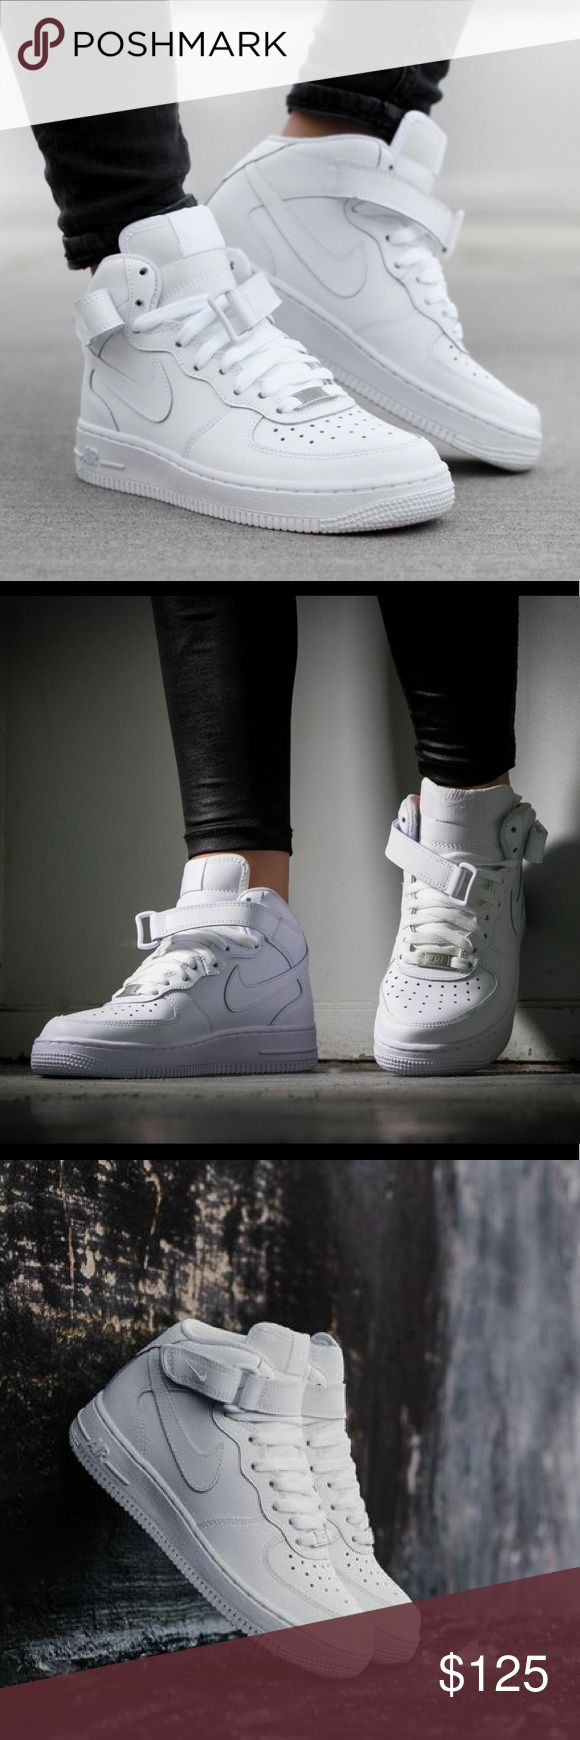 NIKE AIR FORCE 1 MID ALL WHITE SHOES NEW BRAND NEW WITHOUT BOX,  Listed in women's sizing ORDER YOUR WOMENS SHOE SIZE Conversion  5.5 YOUTH = 7 WOMENS  6 YOUTH = 7.5 WOMENS  6.5 YOUTH = 8 WOMENS  7 YOUTH = 8.5 WOMENS   ALL SIZES ARE LISTED ACCORDING TO NIKES SIZE CHART WHICH I ADDED ABOVE FOR YOUR Convenience.   Ships same day or next.  Price is firm.  100% authentic & direct from Nike Nike Shoes Sneakers